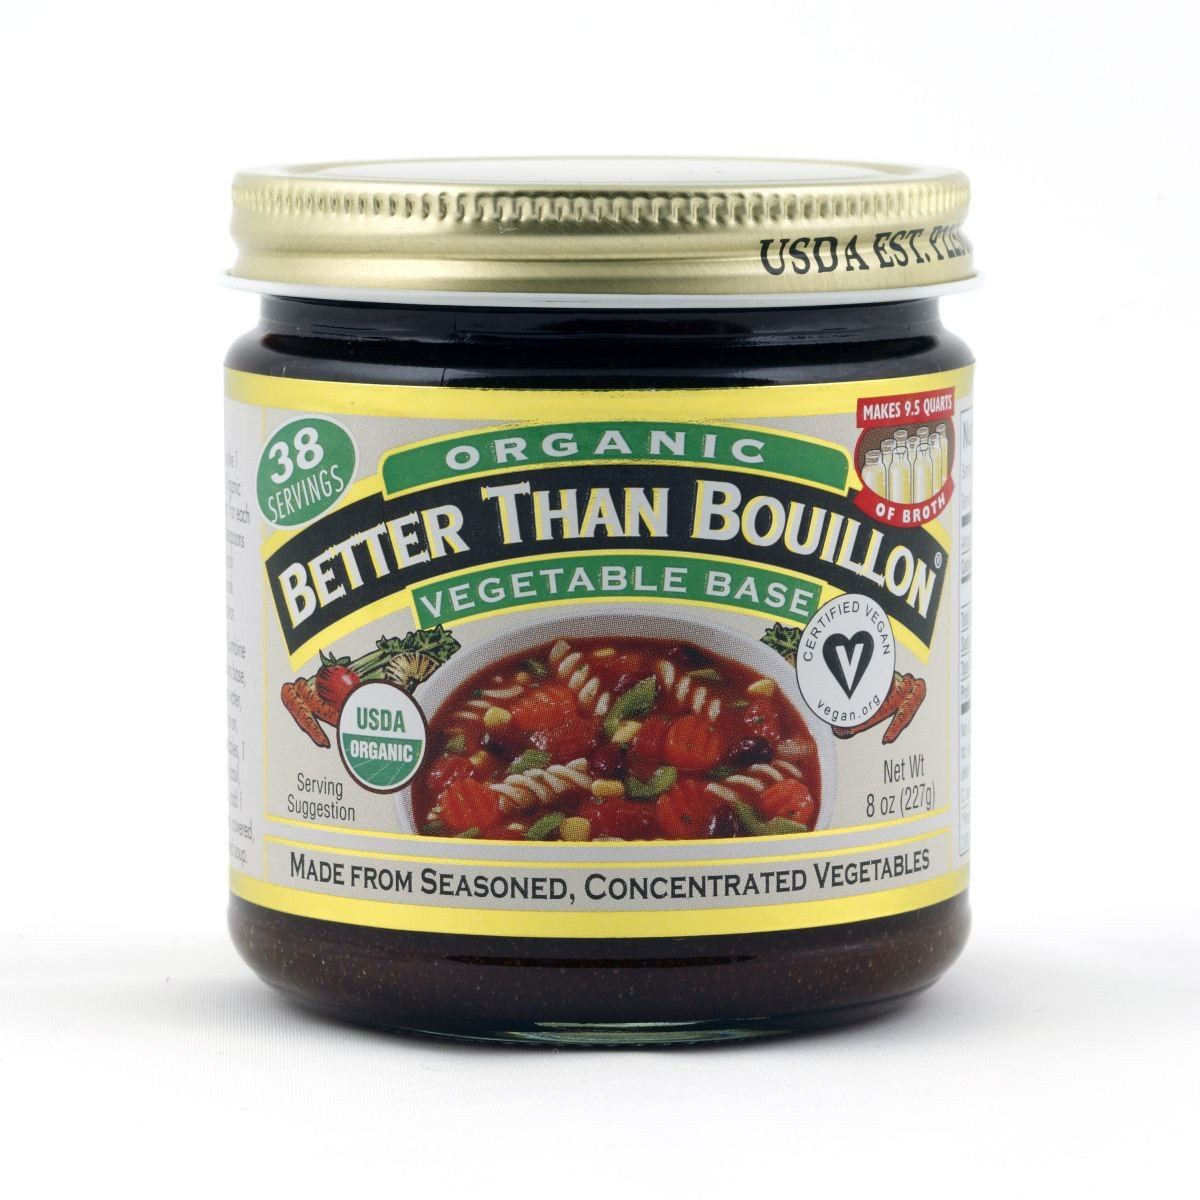 Food & Drink - Better Than Bouillon - Org Vegetable Base - 227g